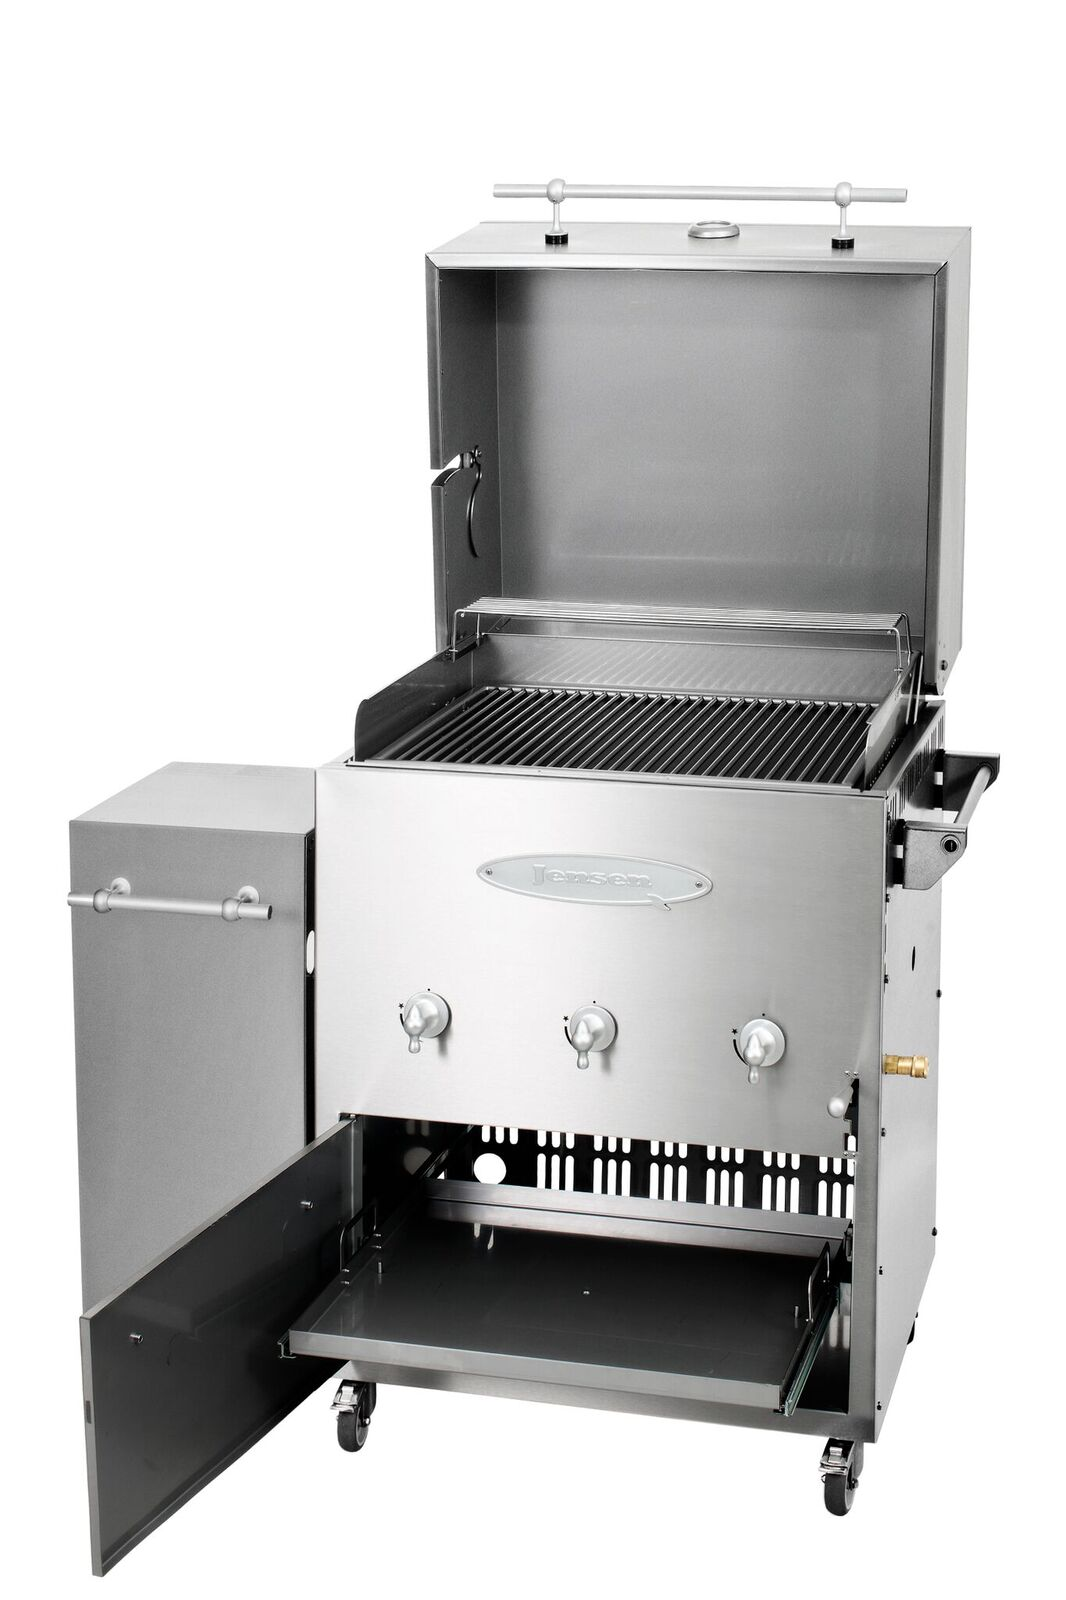 Top 10 Best BBQ Grills And Smokers 2017 Review